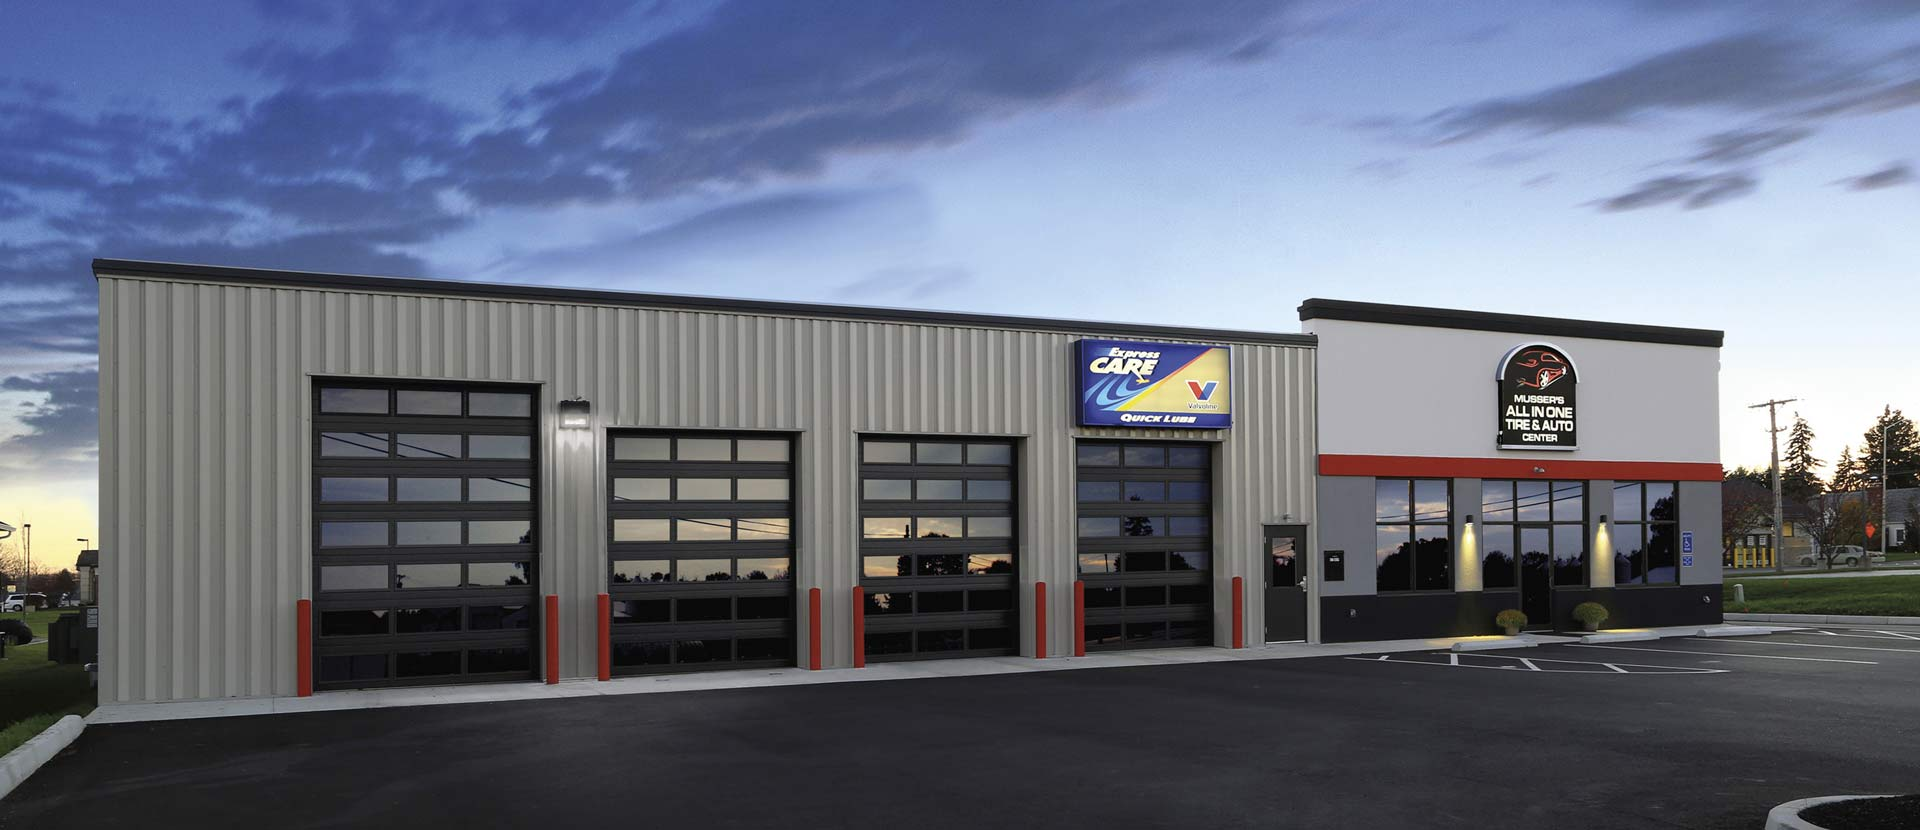 Garage Doors In Appleton Wi Overhead Door Company